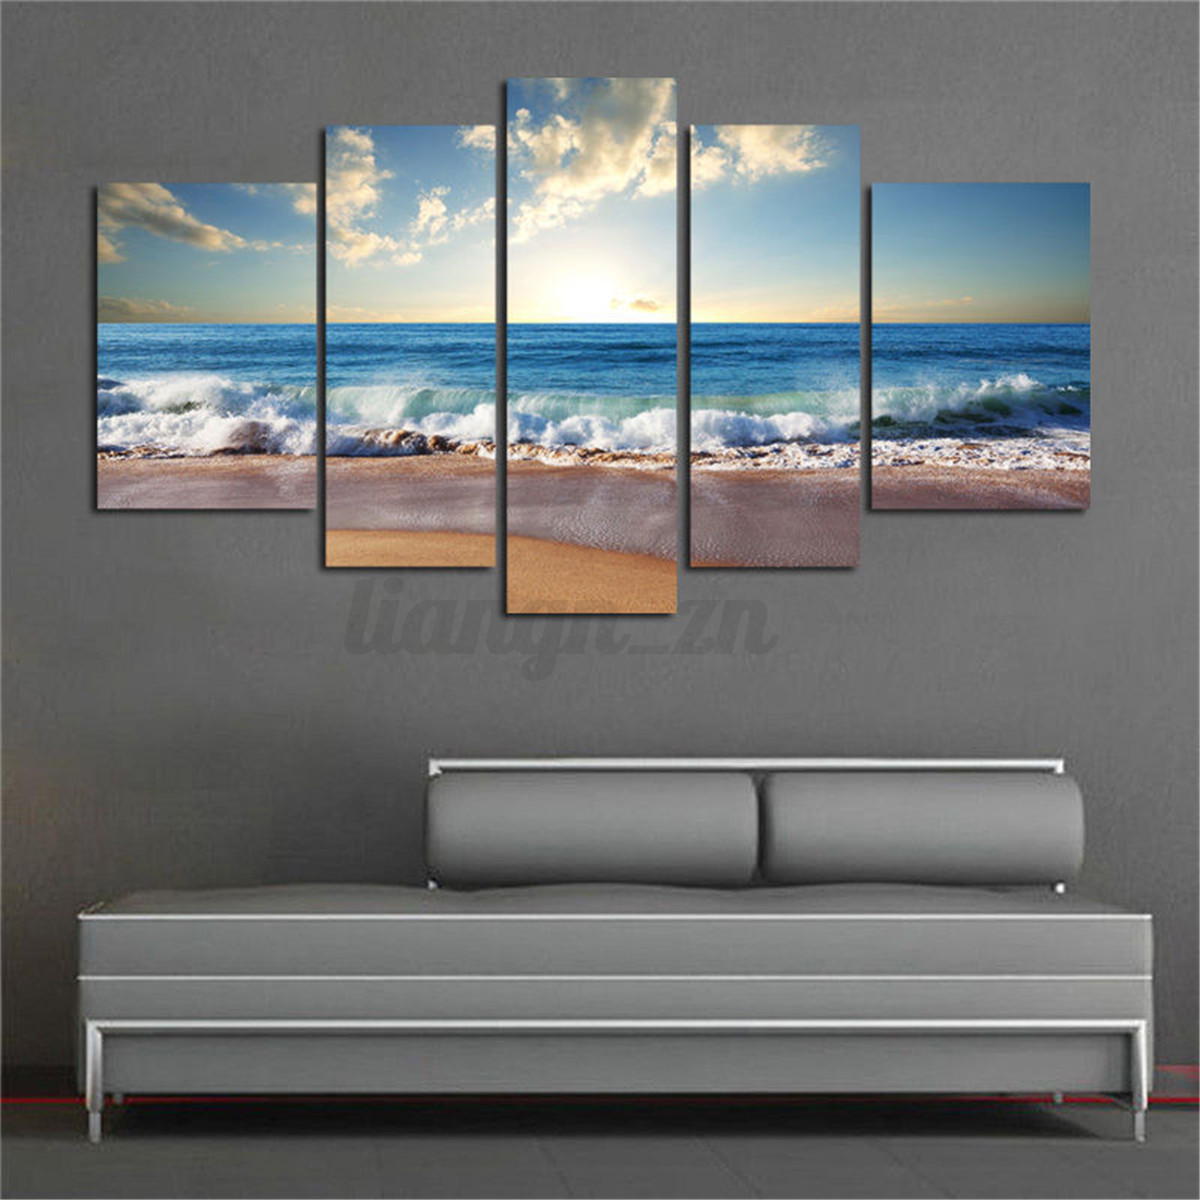 3 5 Pcs Modern Landscape Animals Prints Canvas Art